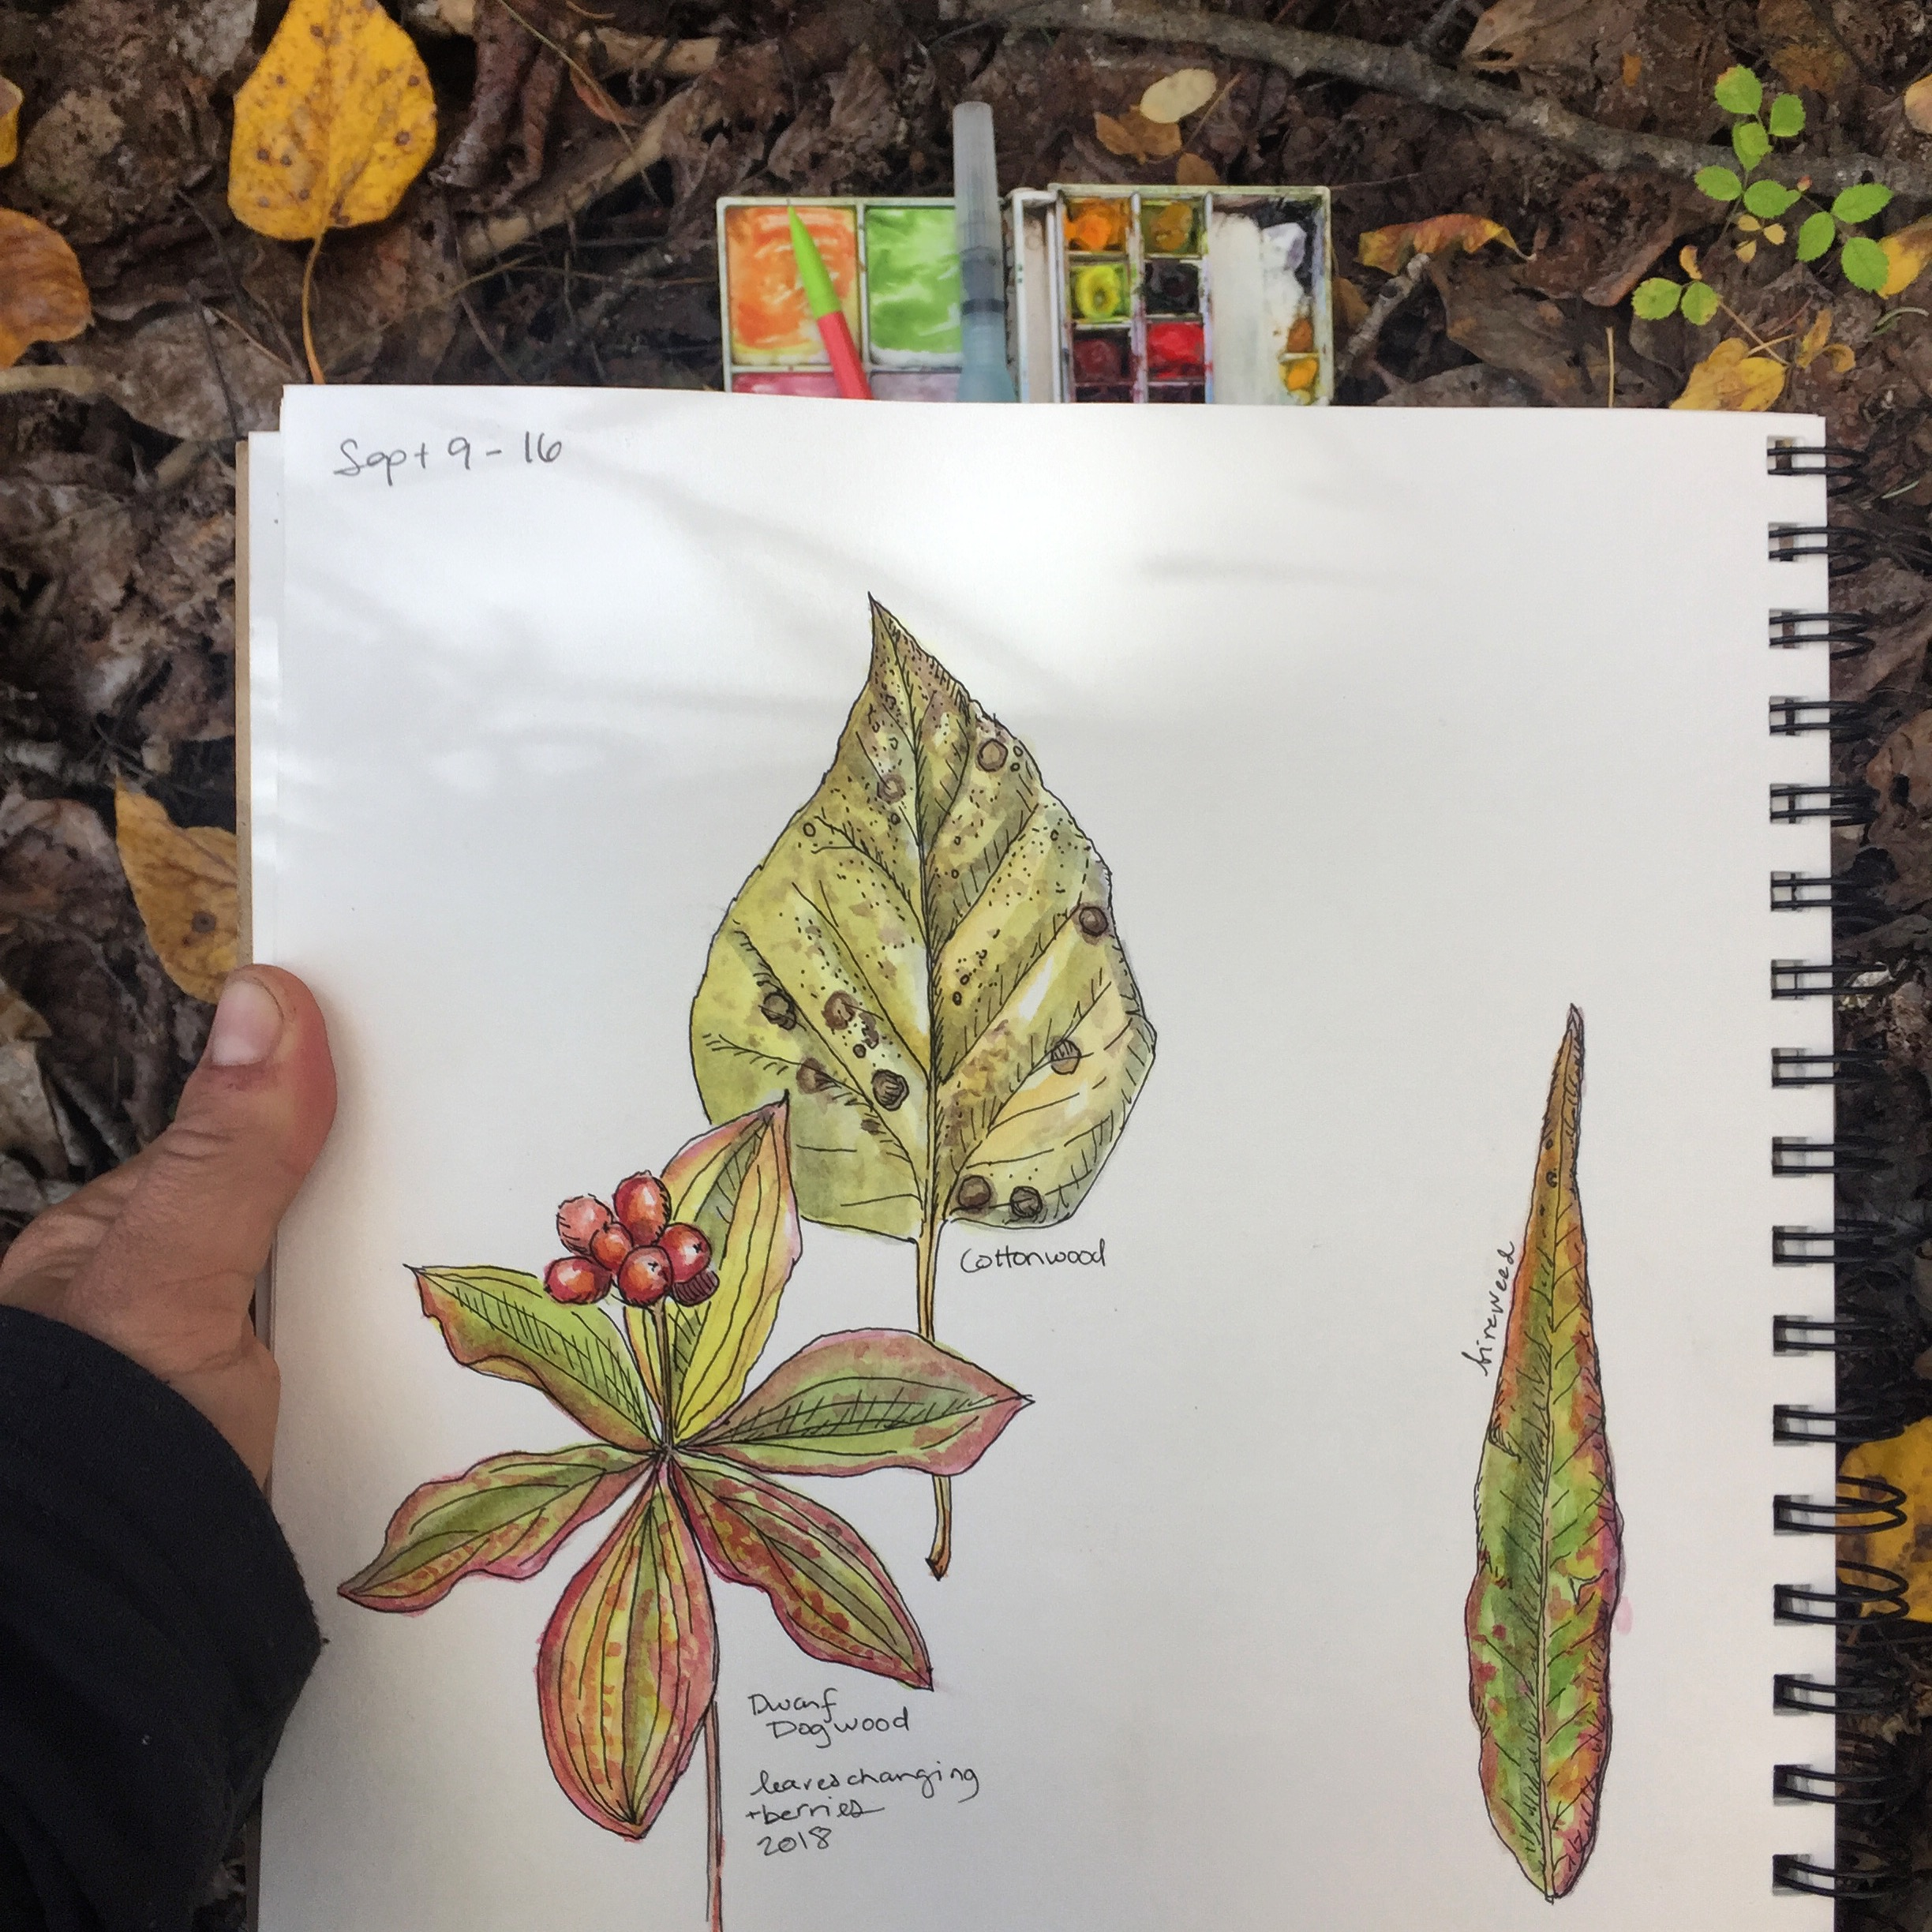 A page from my nature journal/ sketchbook